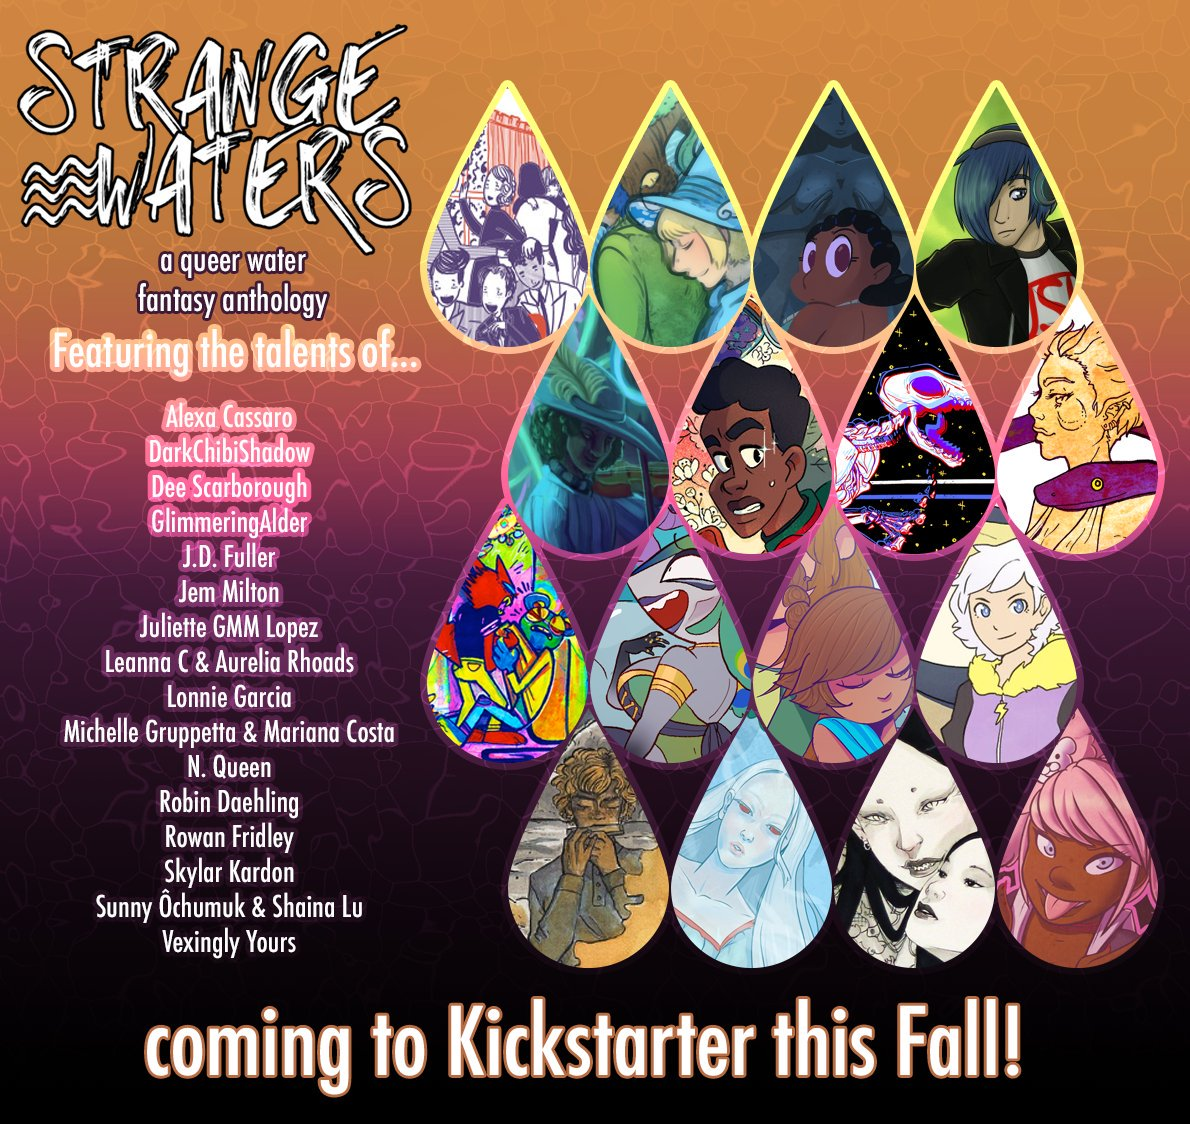 List of authors and artists for Strange Waters